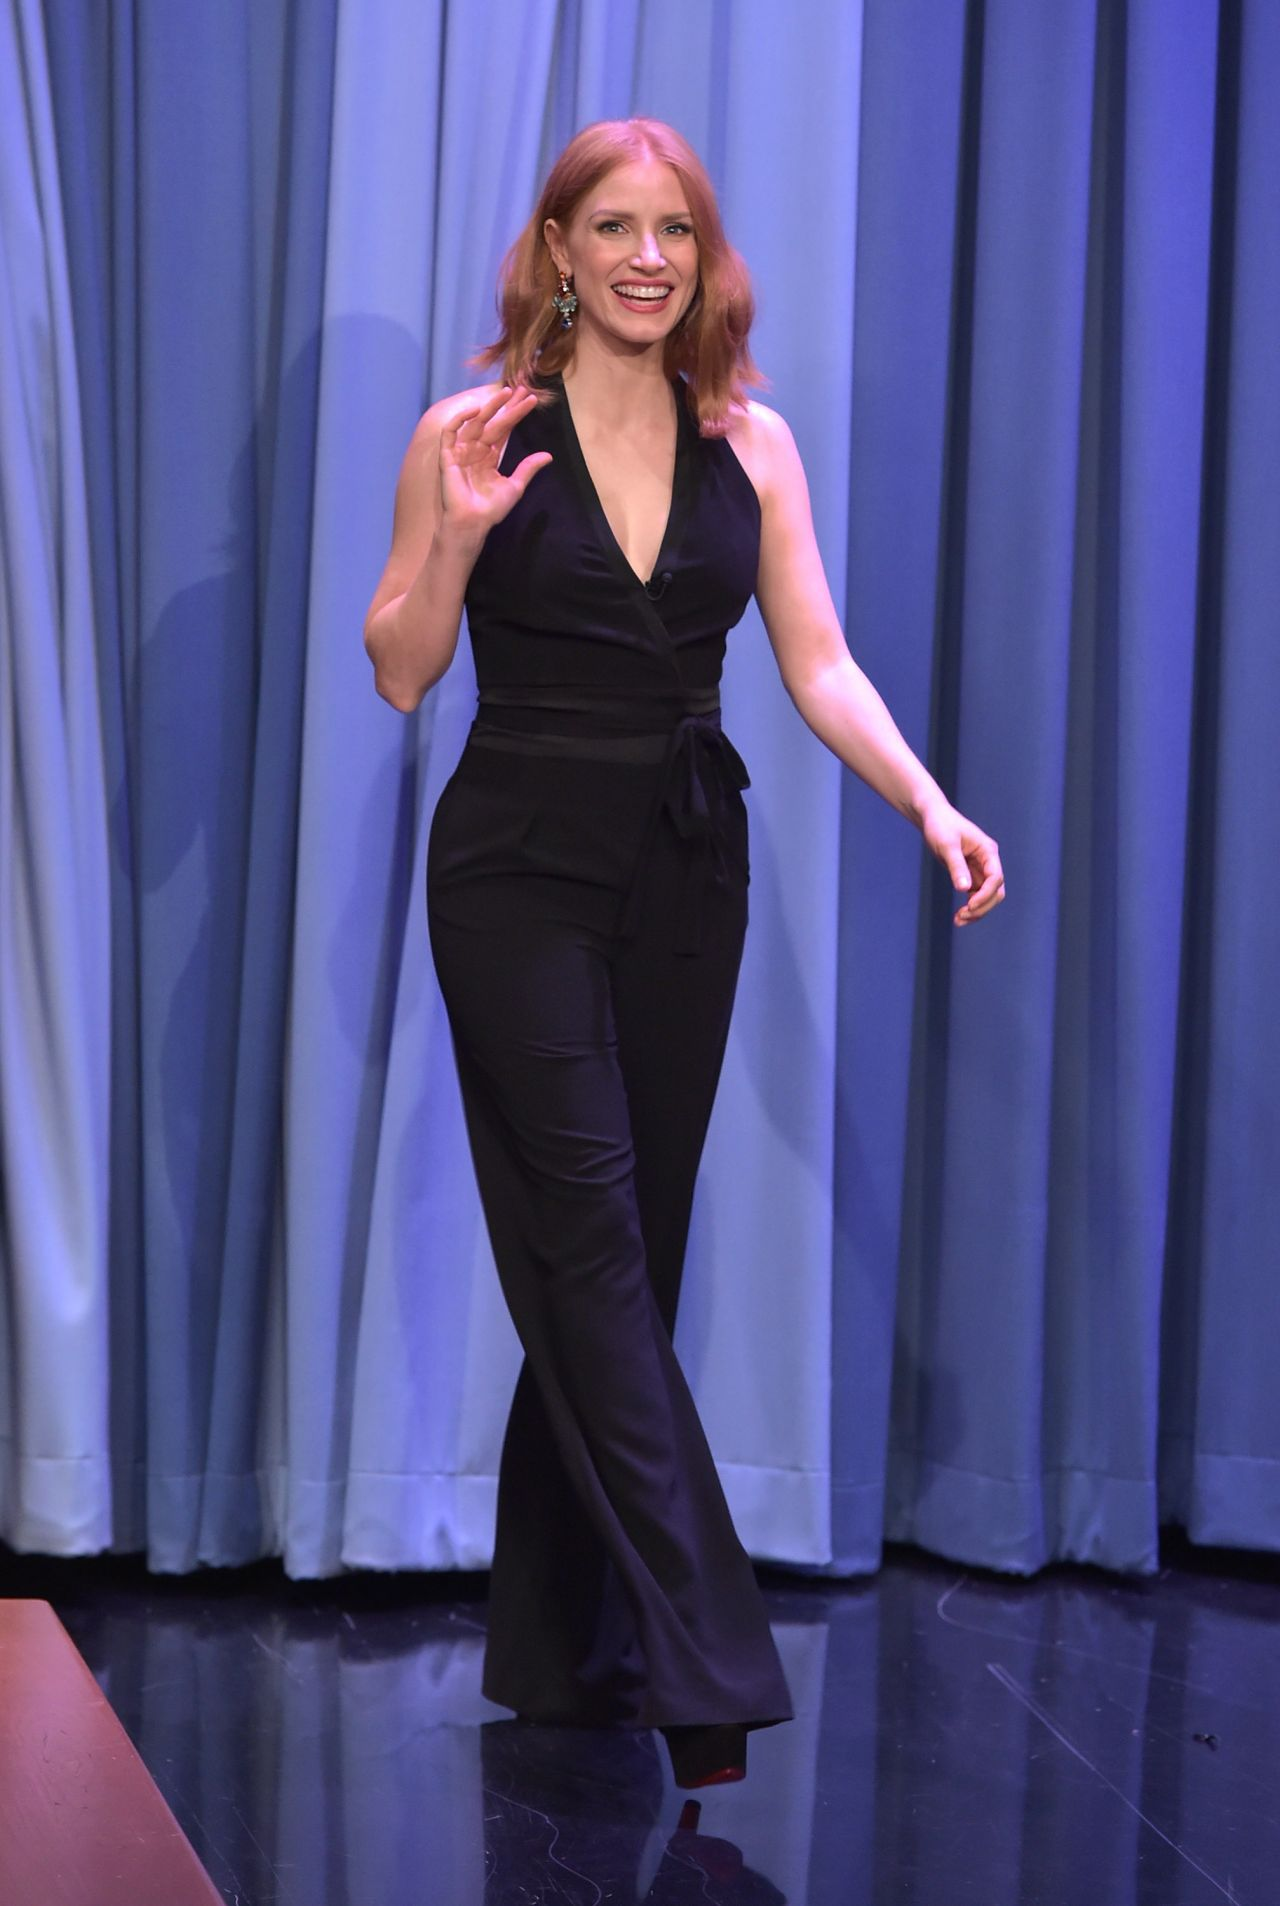 Jessica Chastain photo gallery - page #8 | Celebs-Place.com Jessica Chastain Born